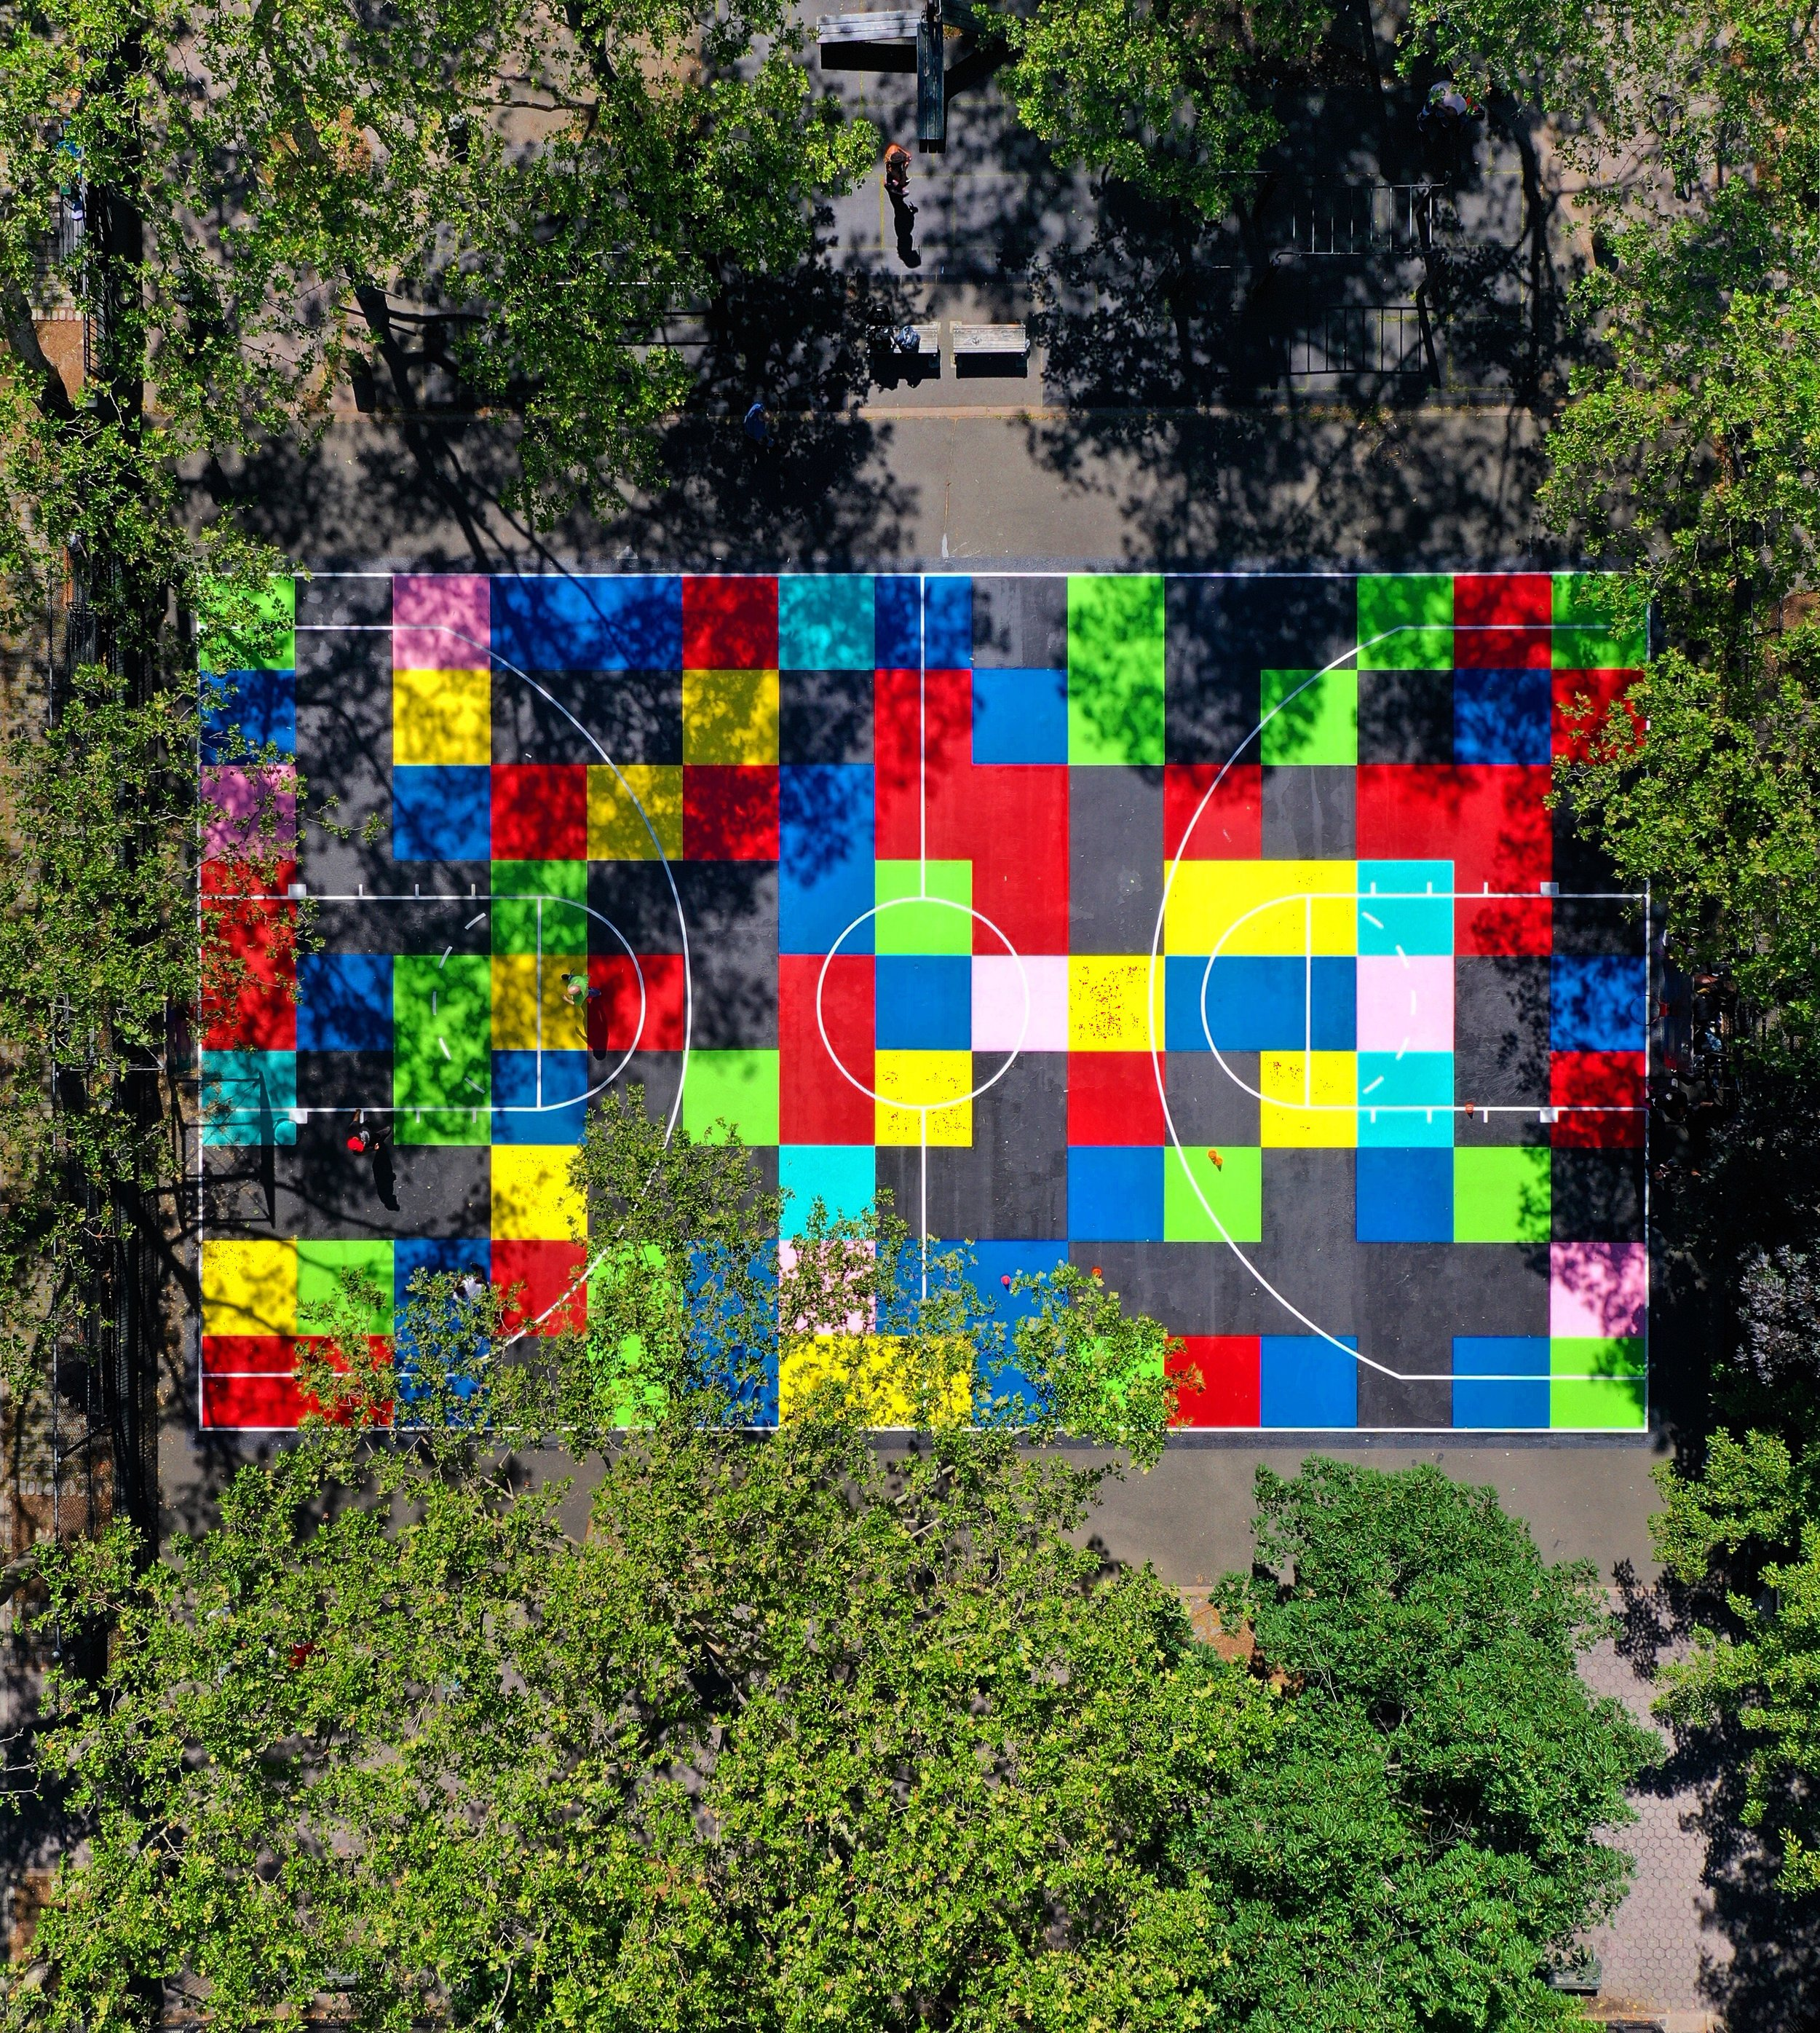 5b9k3q@^tg6!+2F<%0  , NYC Parks and Facebook sponsored basketball court at Chelsea park, 2019